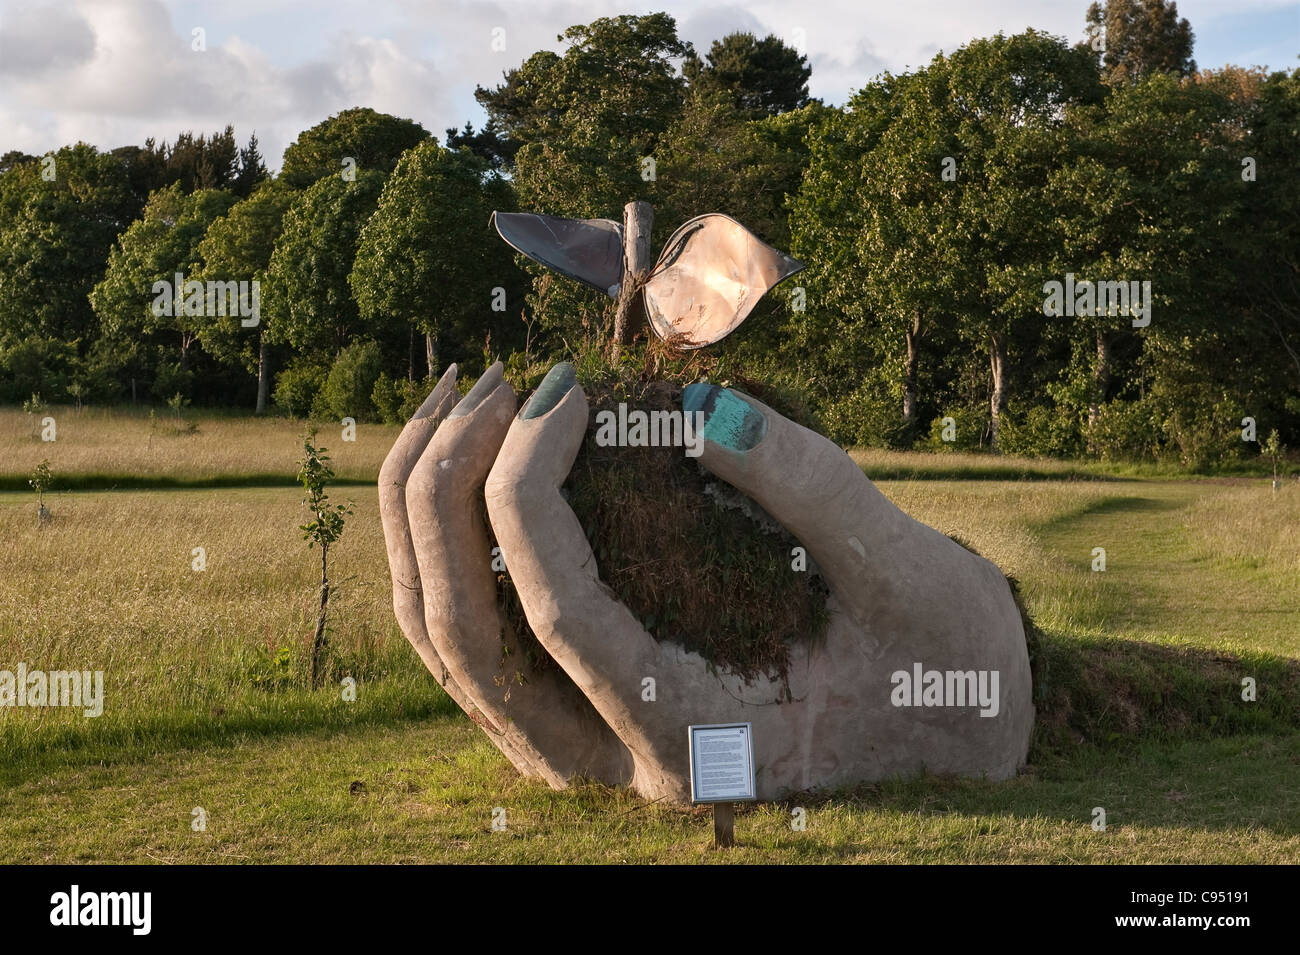 Cotehele, Cornwall, UK. Sculpture by Brendan Murless in the 'Mother Orchard' which contains rare local varieties - Stock Image